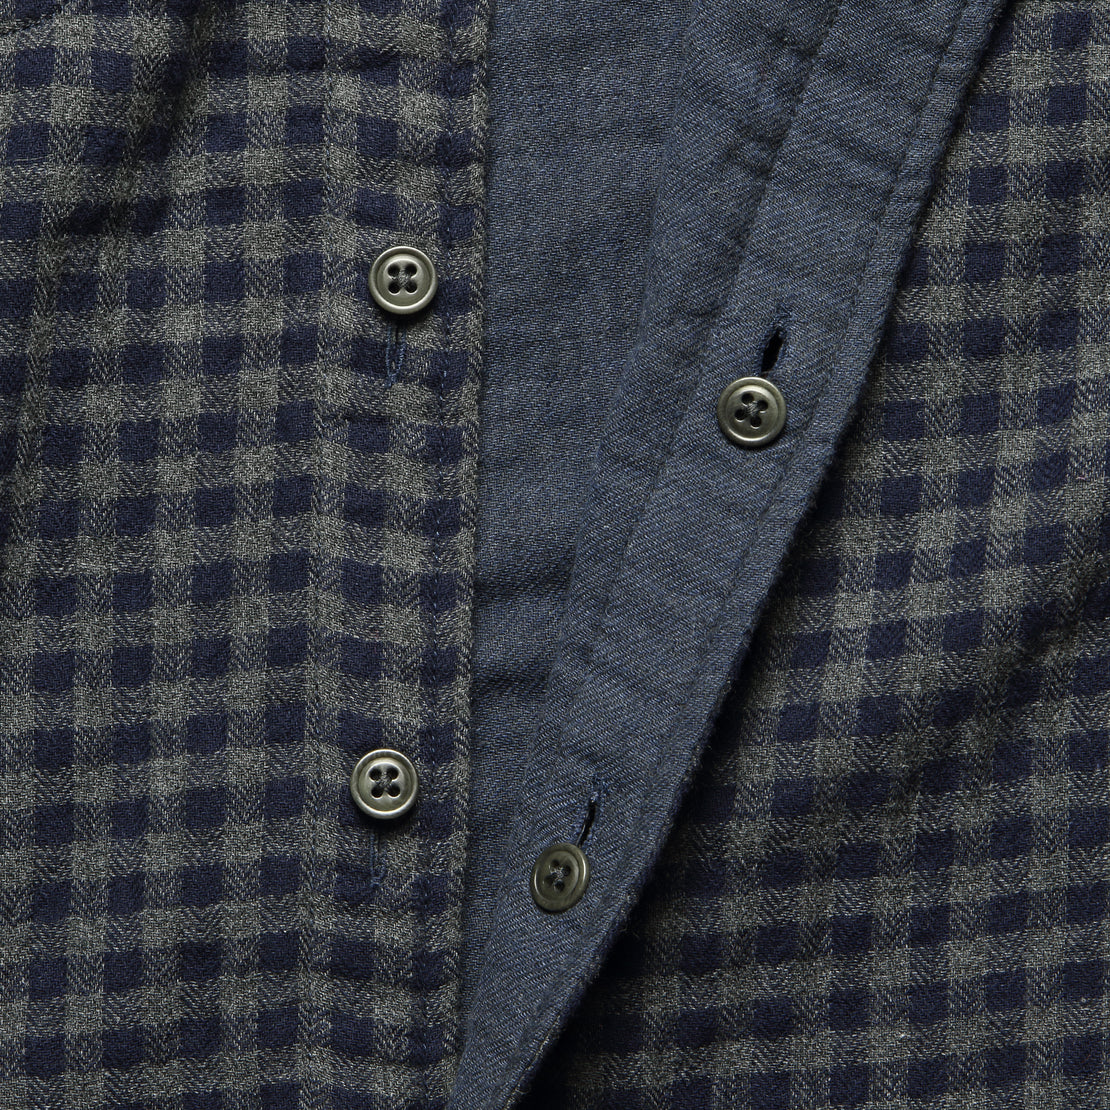 Belmar Workshirt - Charcoal Navy Check